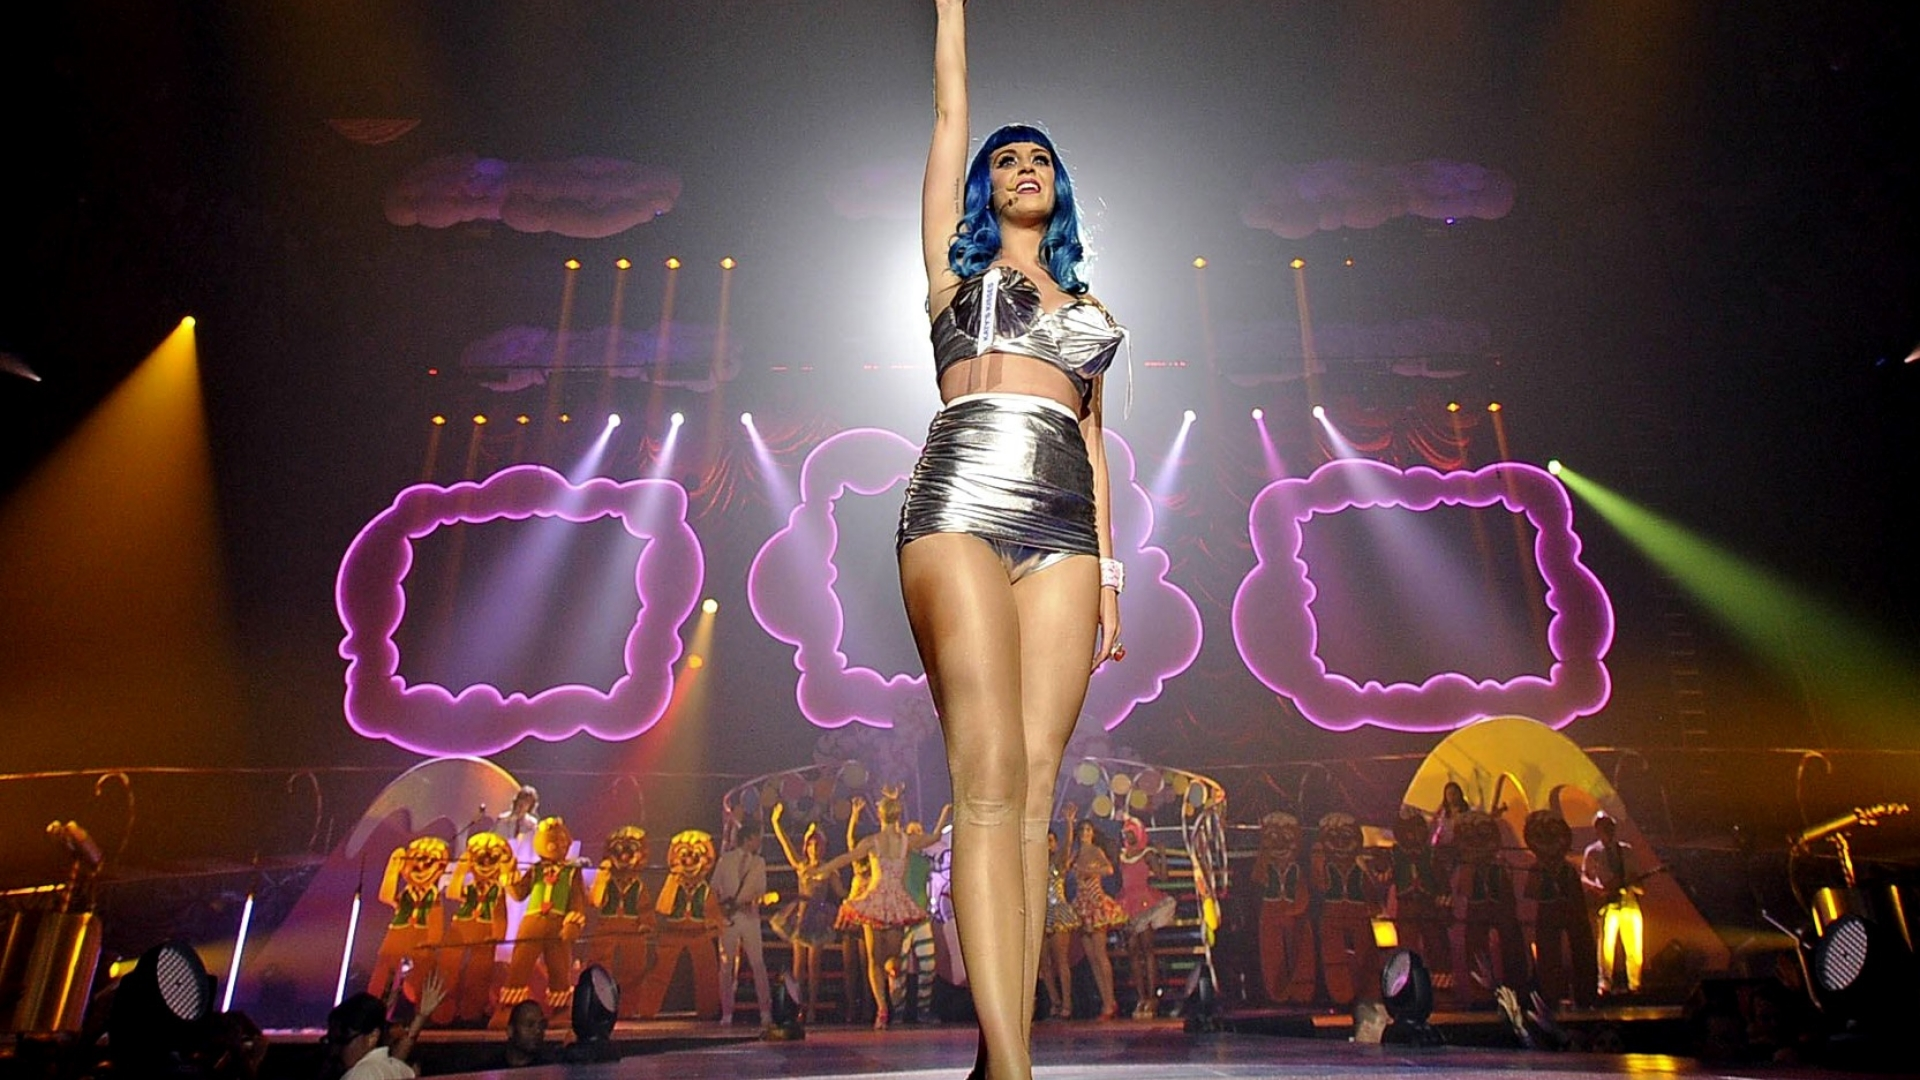 Katy Perry on stage wallpaper